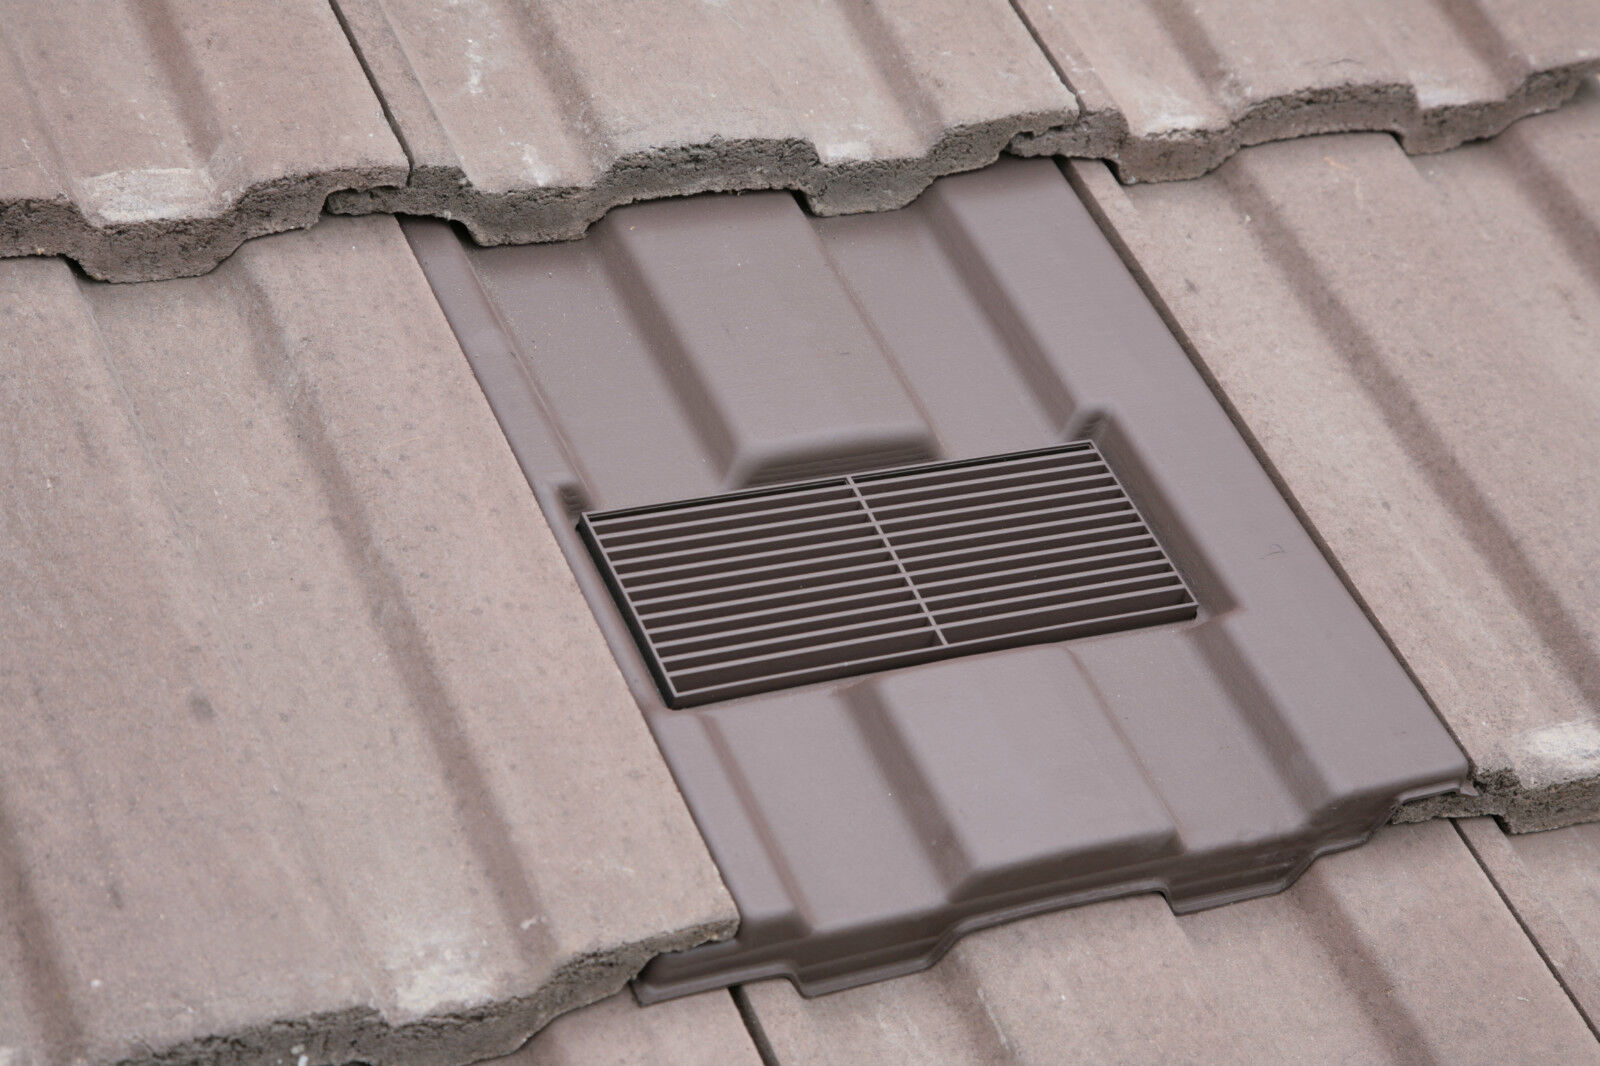 Roof Tile Vent To Fit Marley Ludlow Major With Optional Adaptor Kit Ebay